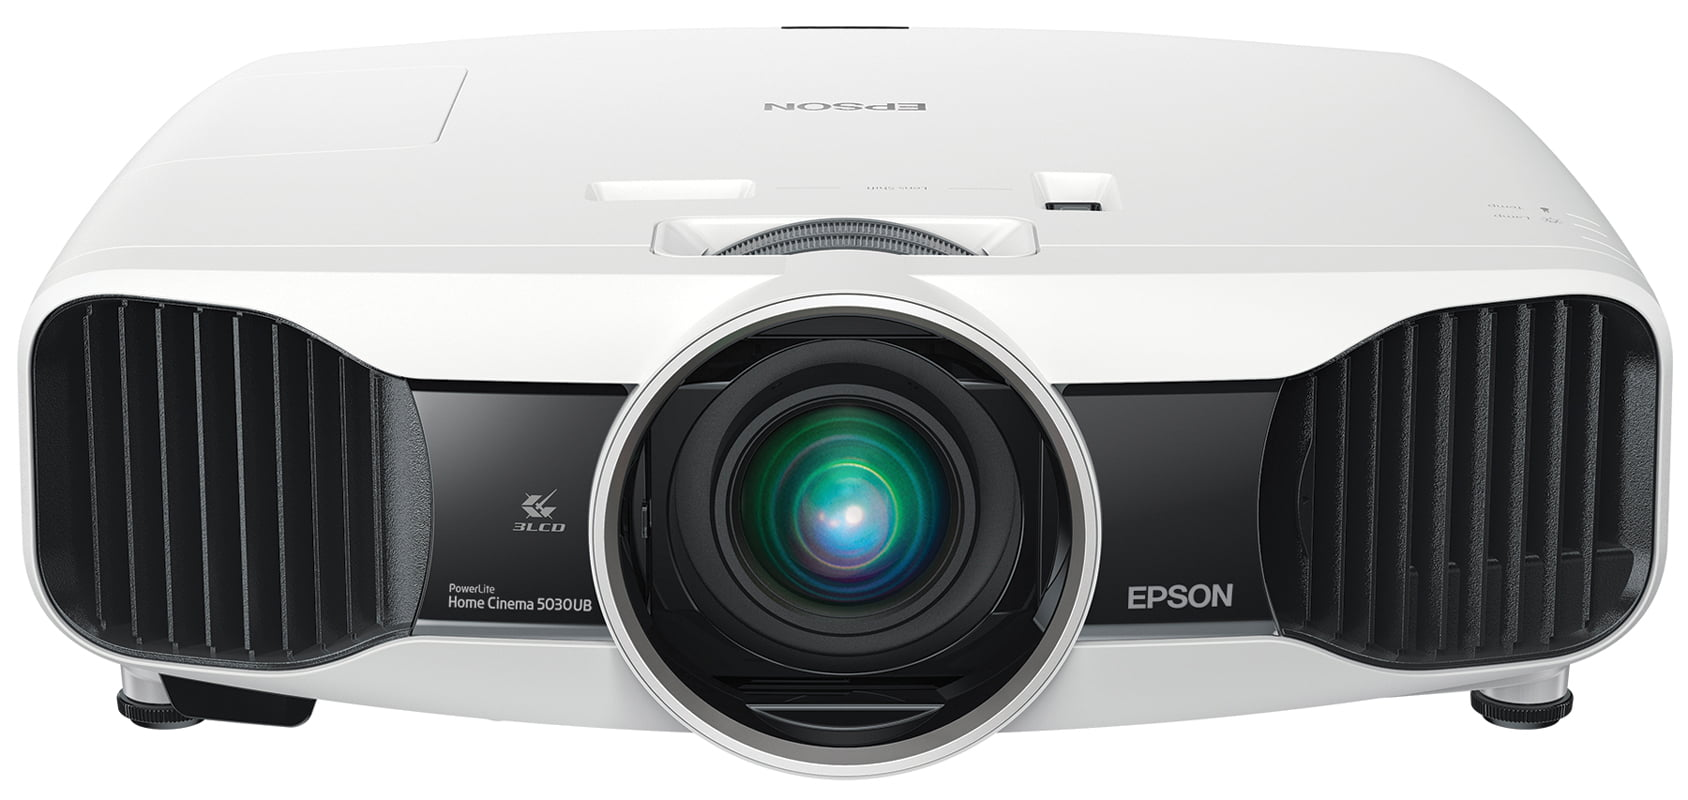 Epson's PowerLite Home Cinema.